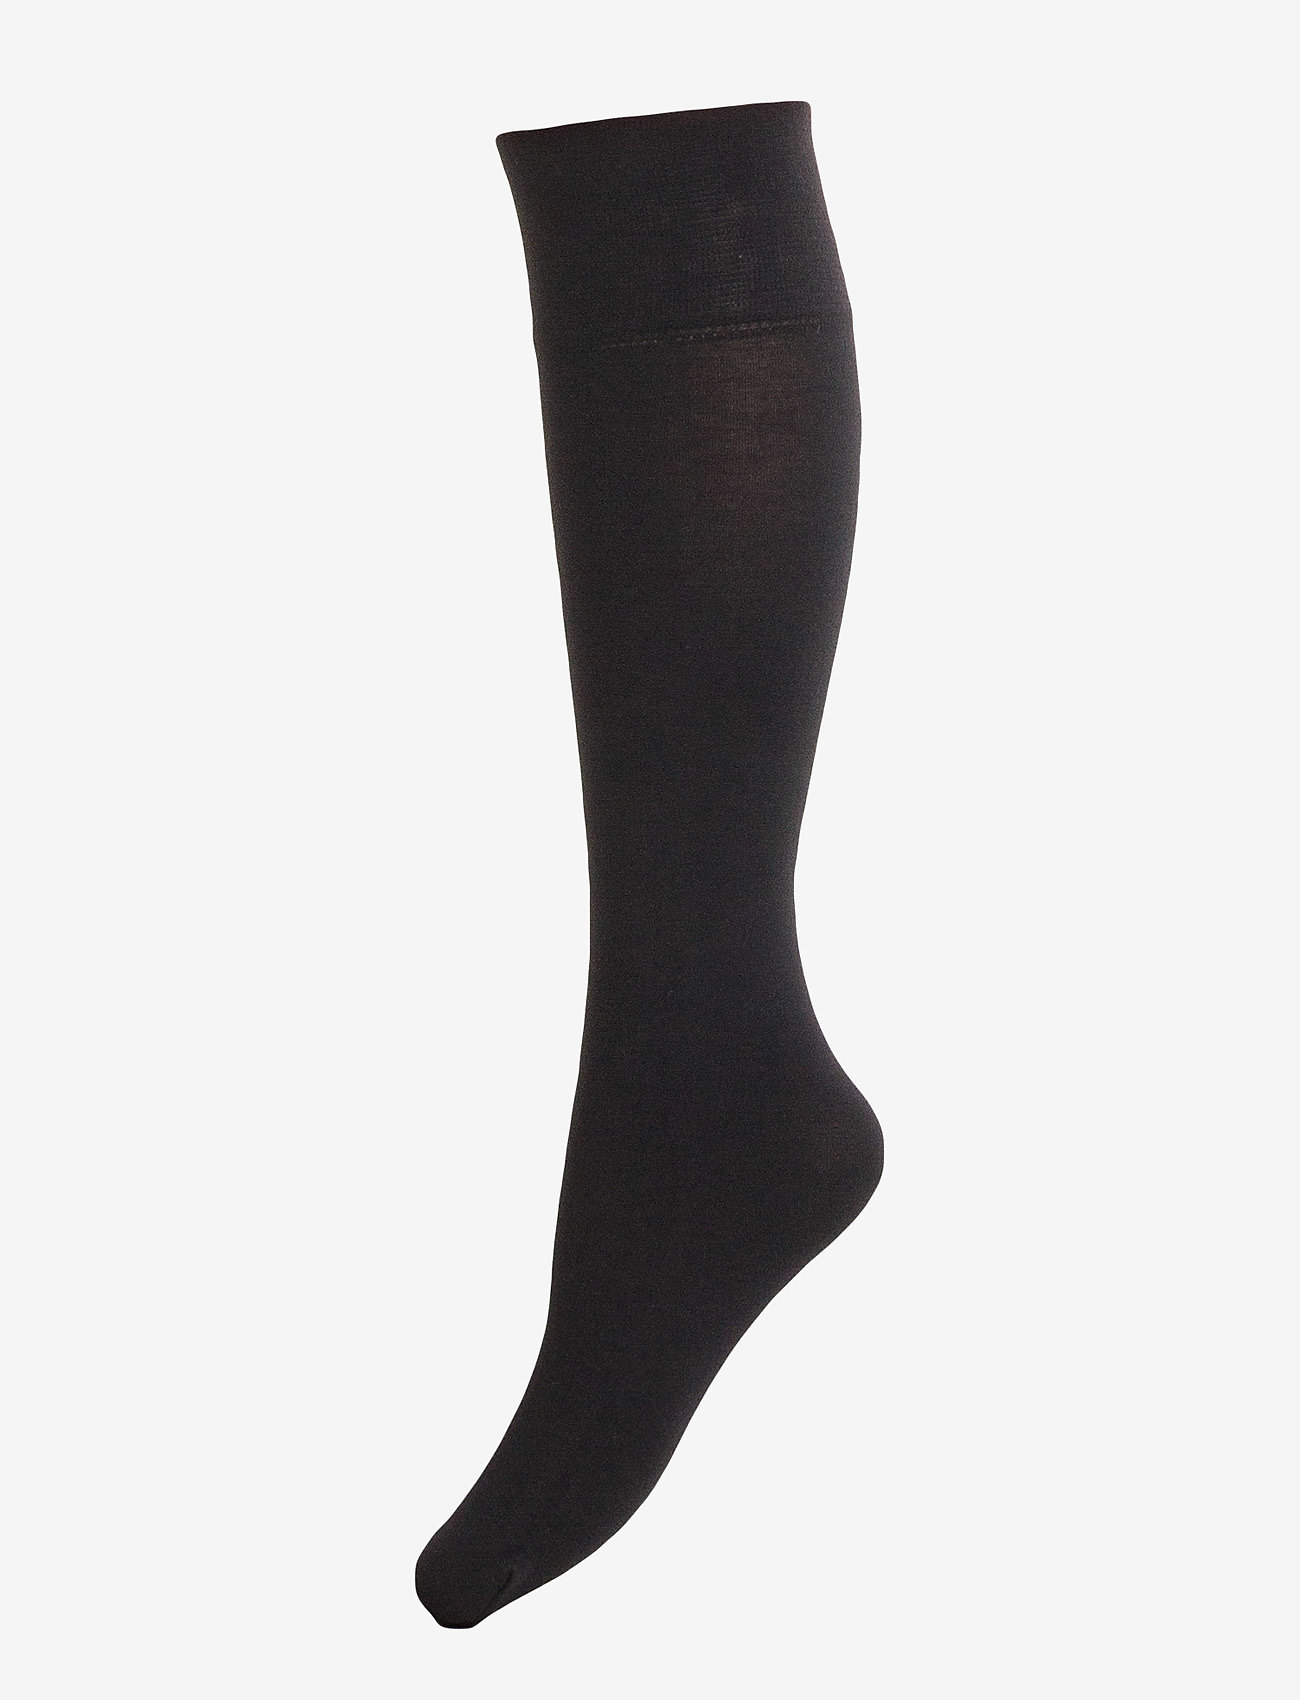 Vogue - Ladies knee high, Silky Cotton Knee - knee-highs - black - 0